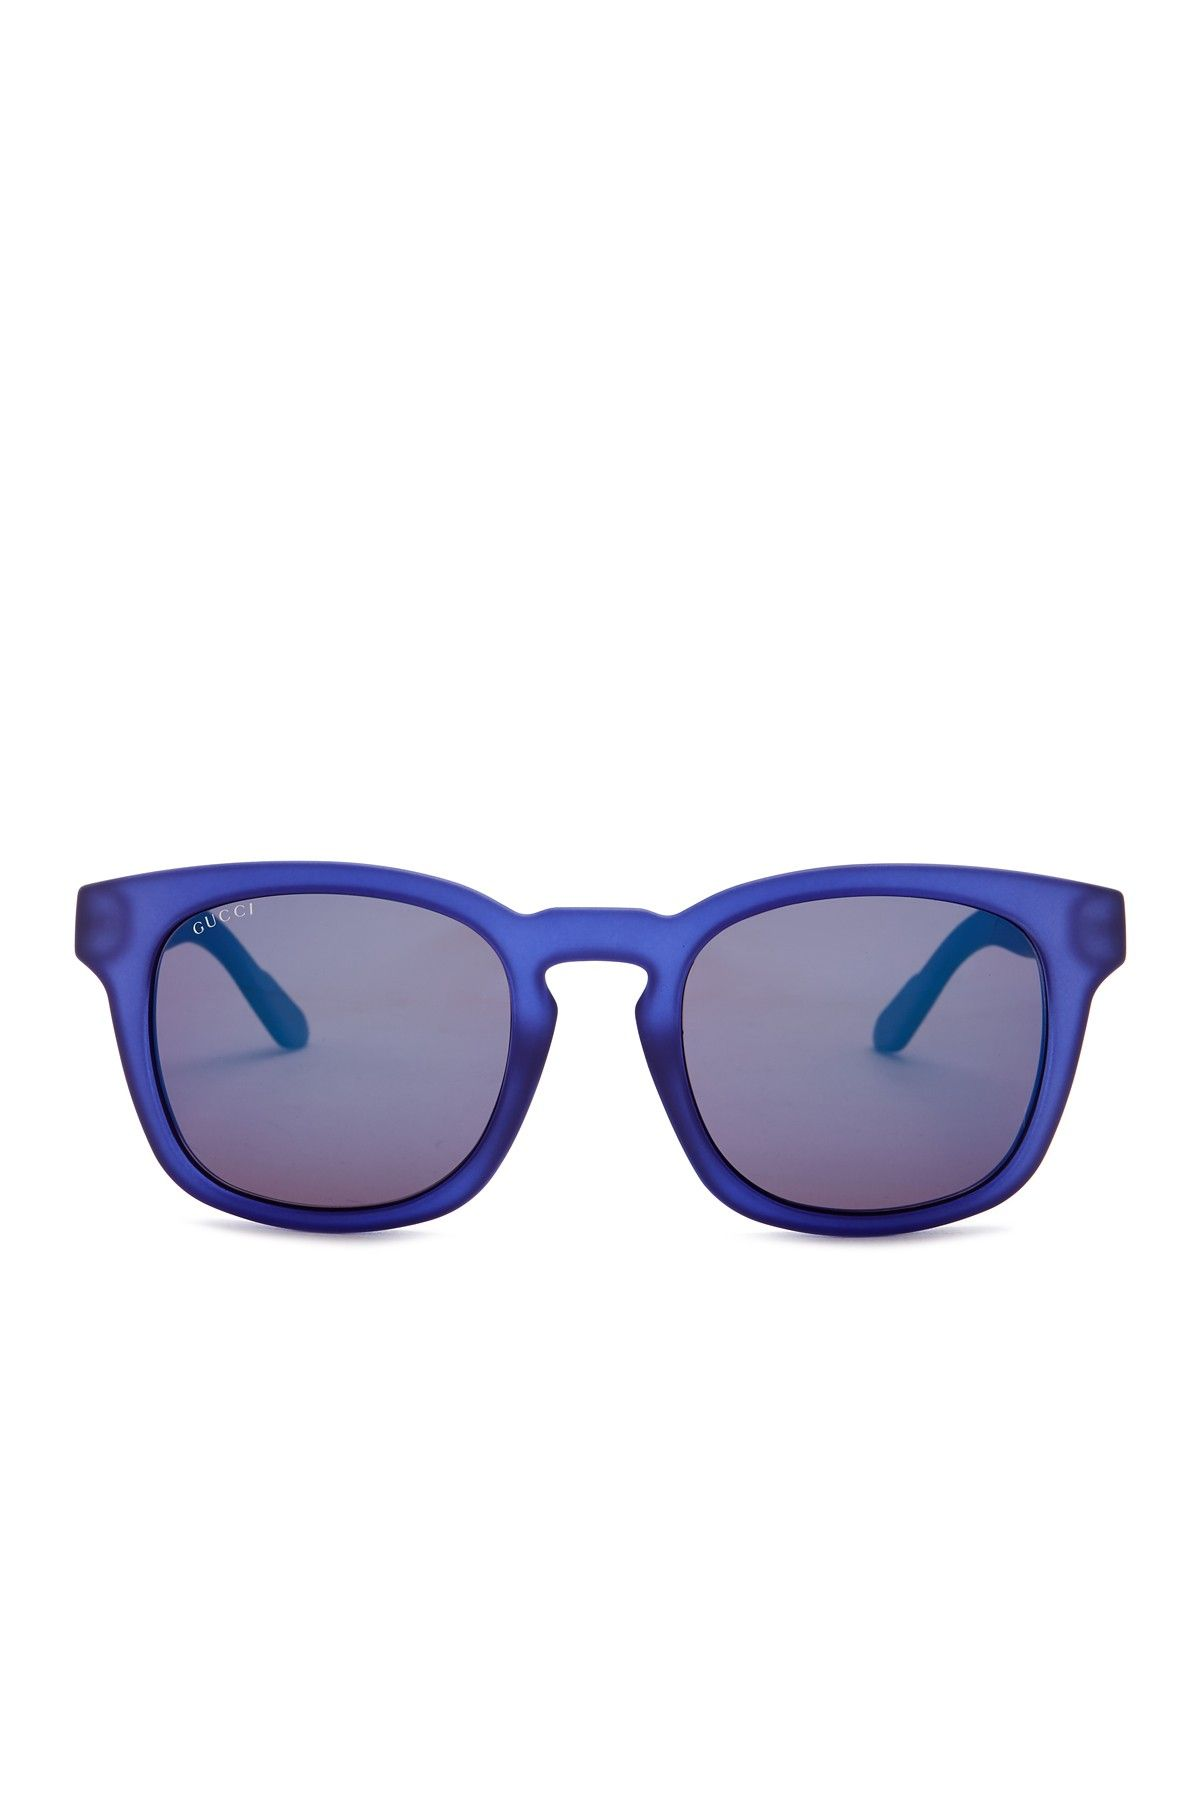 86ff3f90e Men's Rectangular Sunglasses. Find this Pin and more on Products by  Nordstrom Rack.